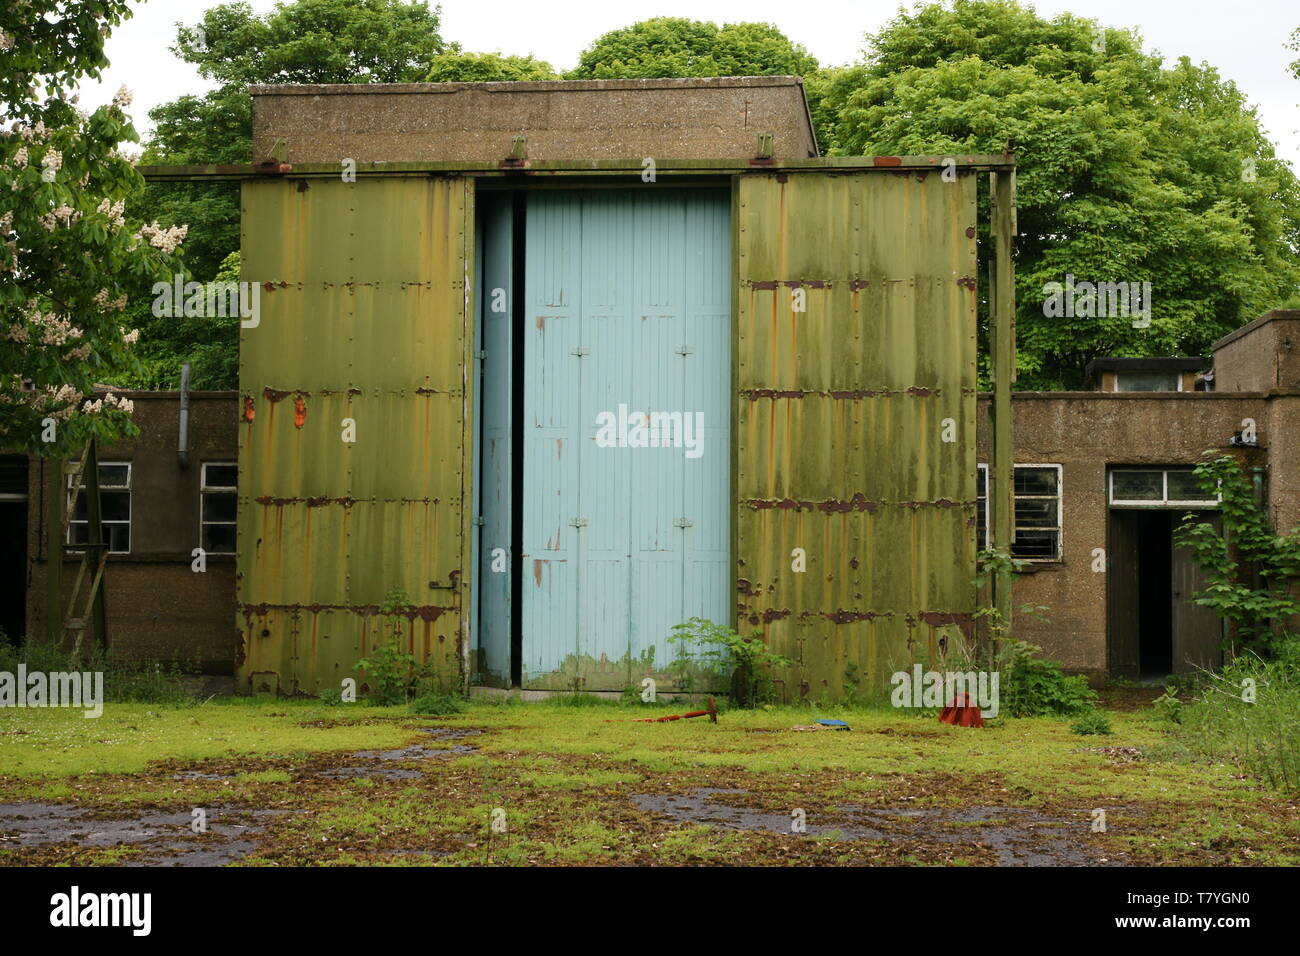 RAF Driffield, ww2 airfield, store with blast proof doors Stock